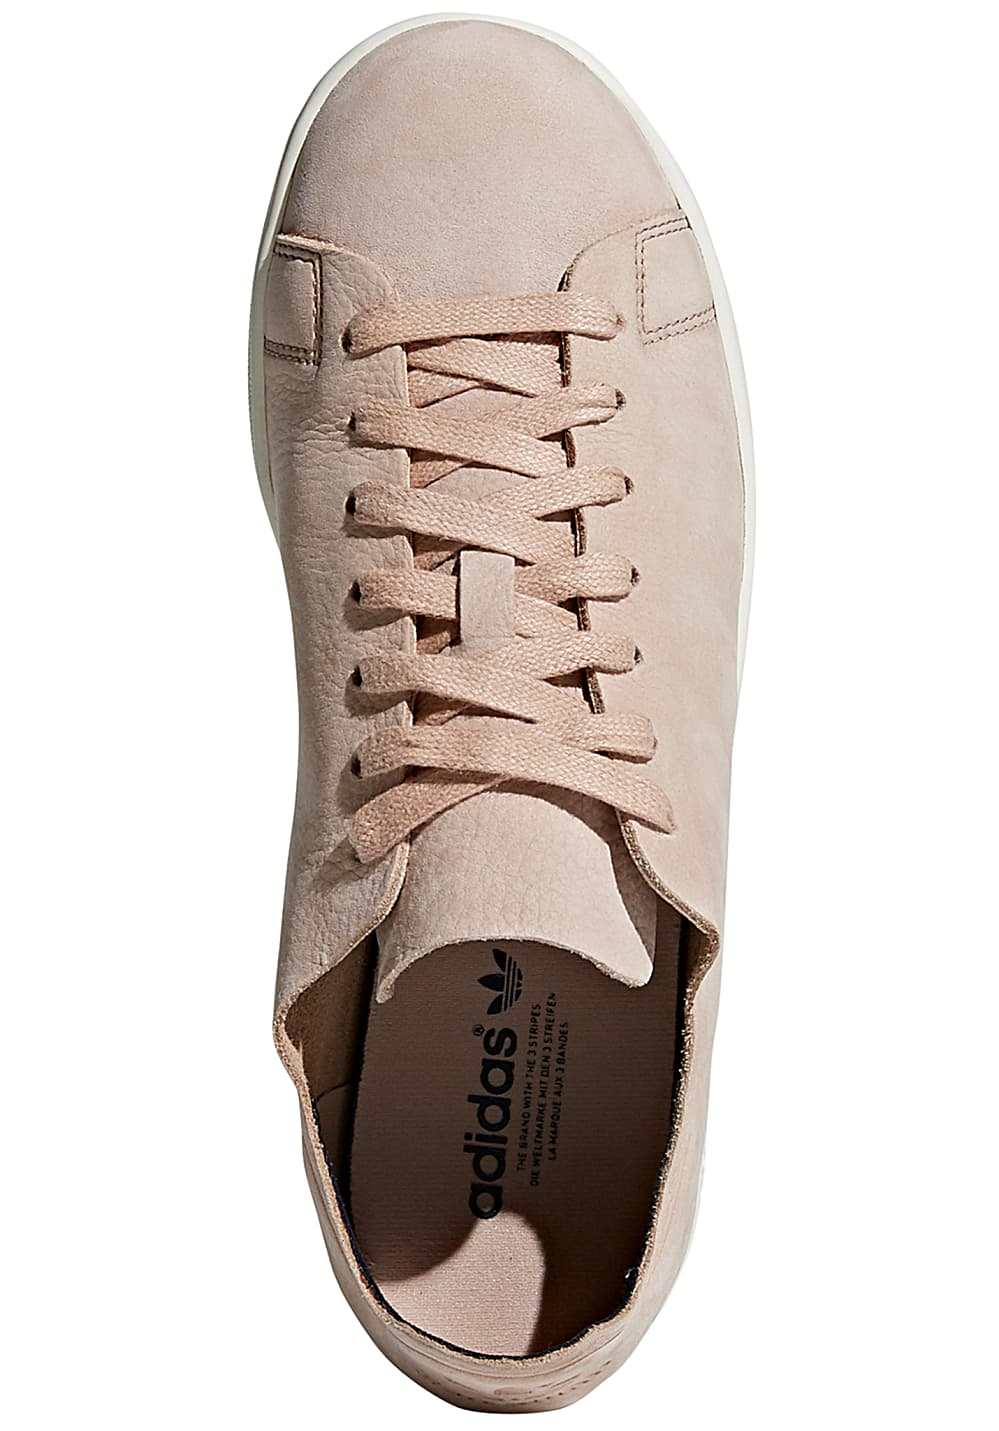 on sale d33ea 4362e ADIDAS ORIGINALS Stan Smith Nuud - Sneakers for Women - Pink